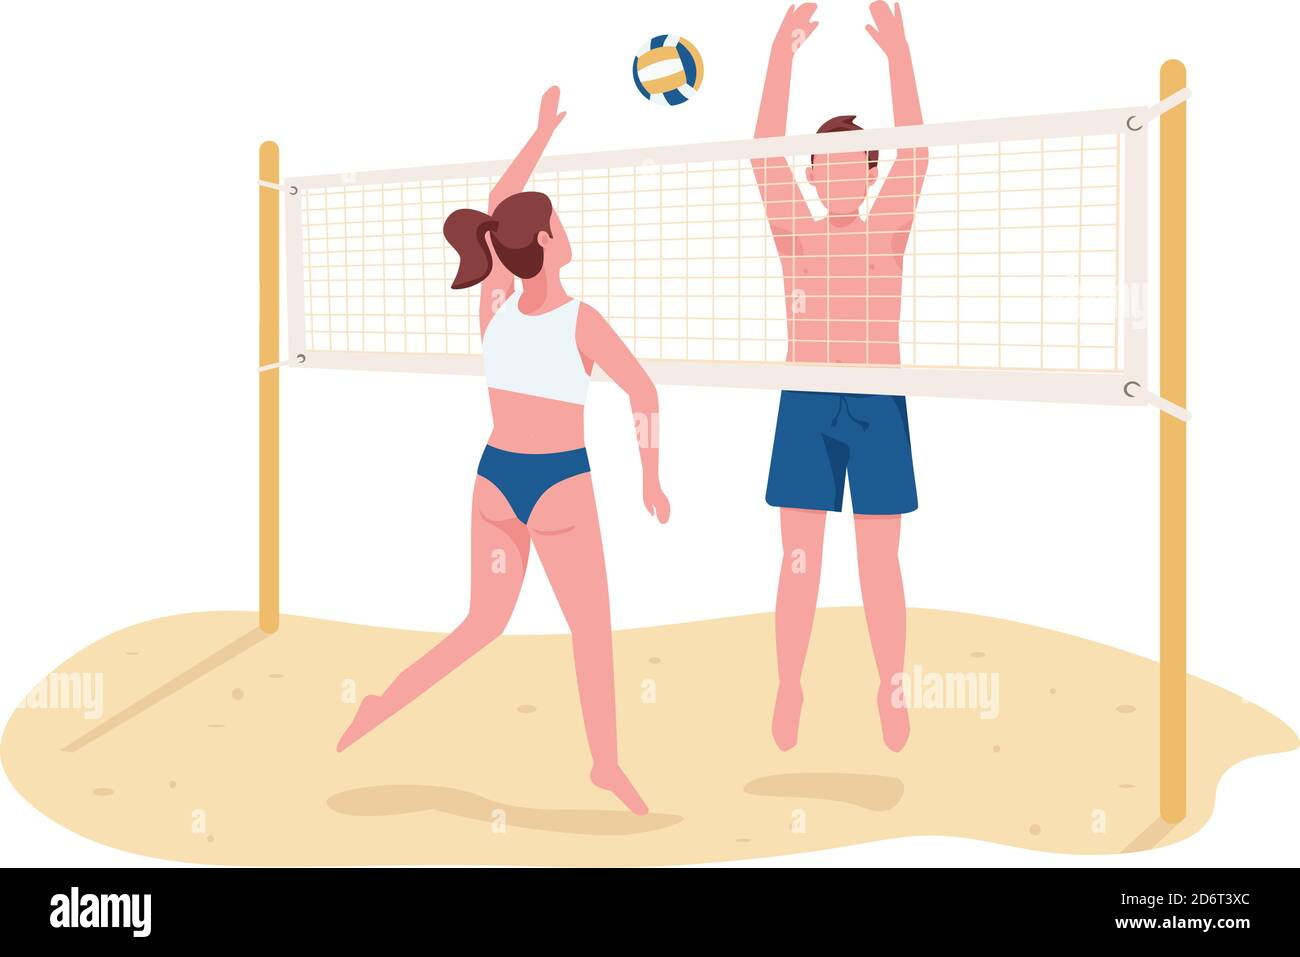 Volleyball By Exelionstar - Girl Volleyball Player Cartoon , Free  Transparent Clipart - ClipartKey